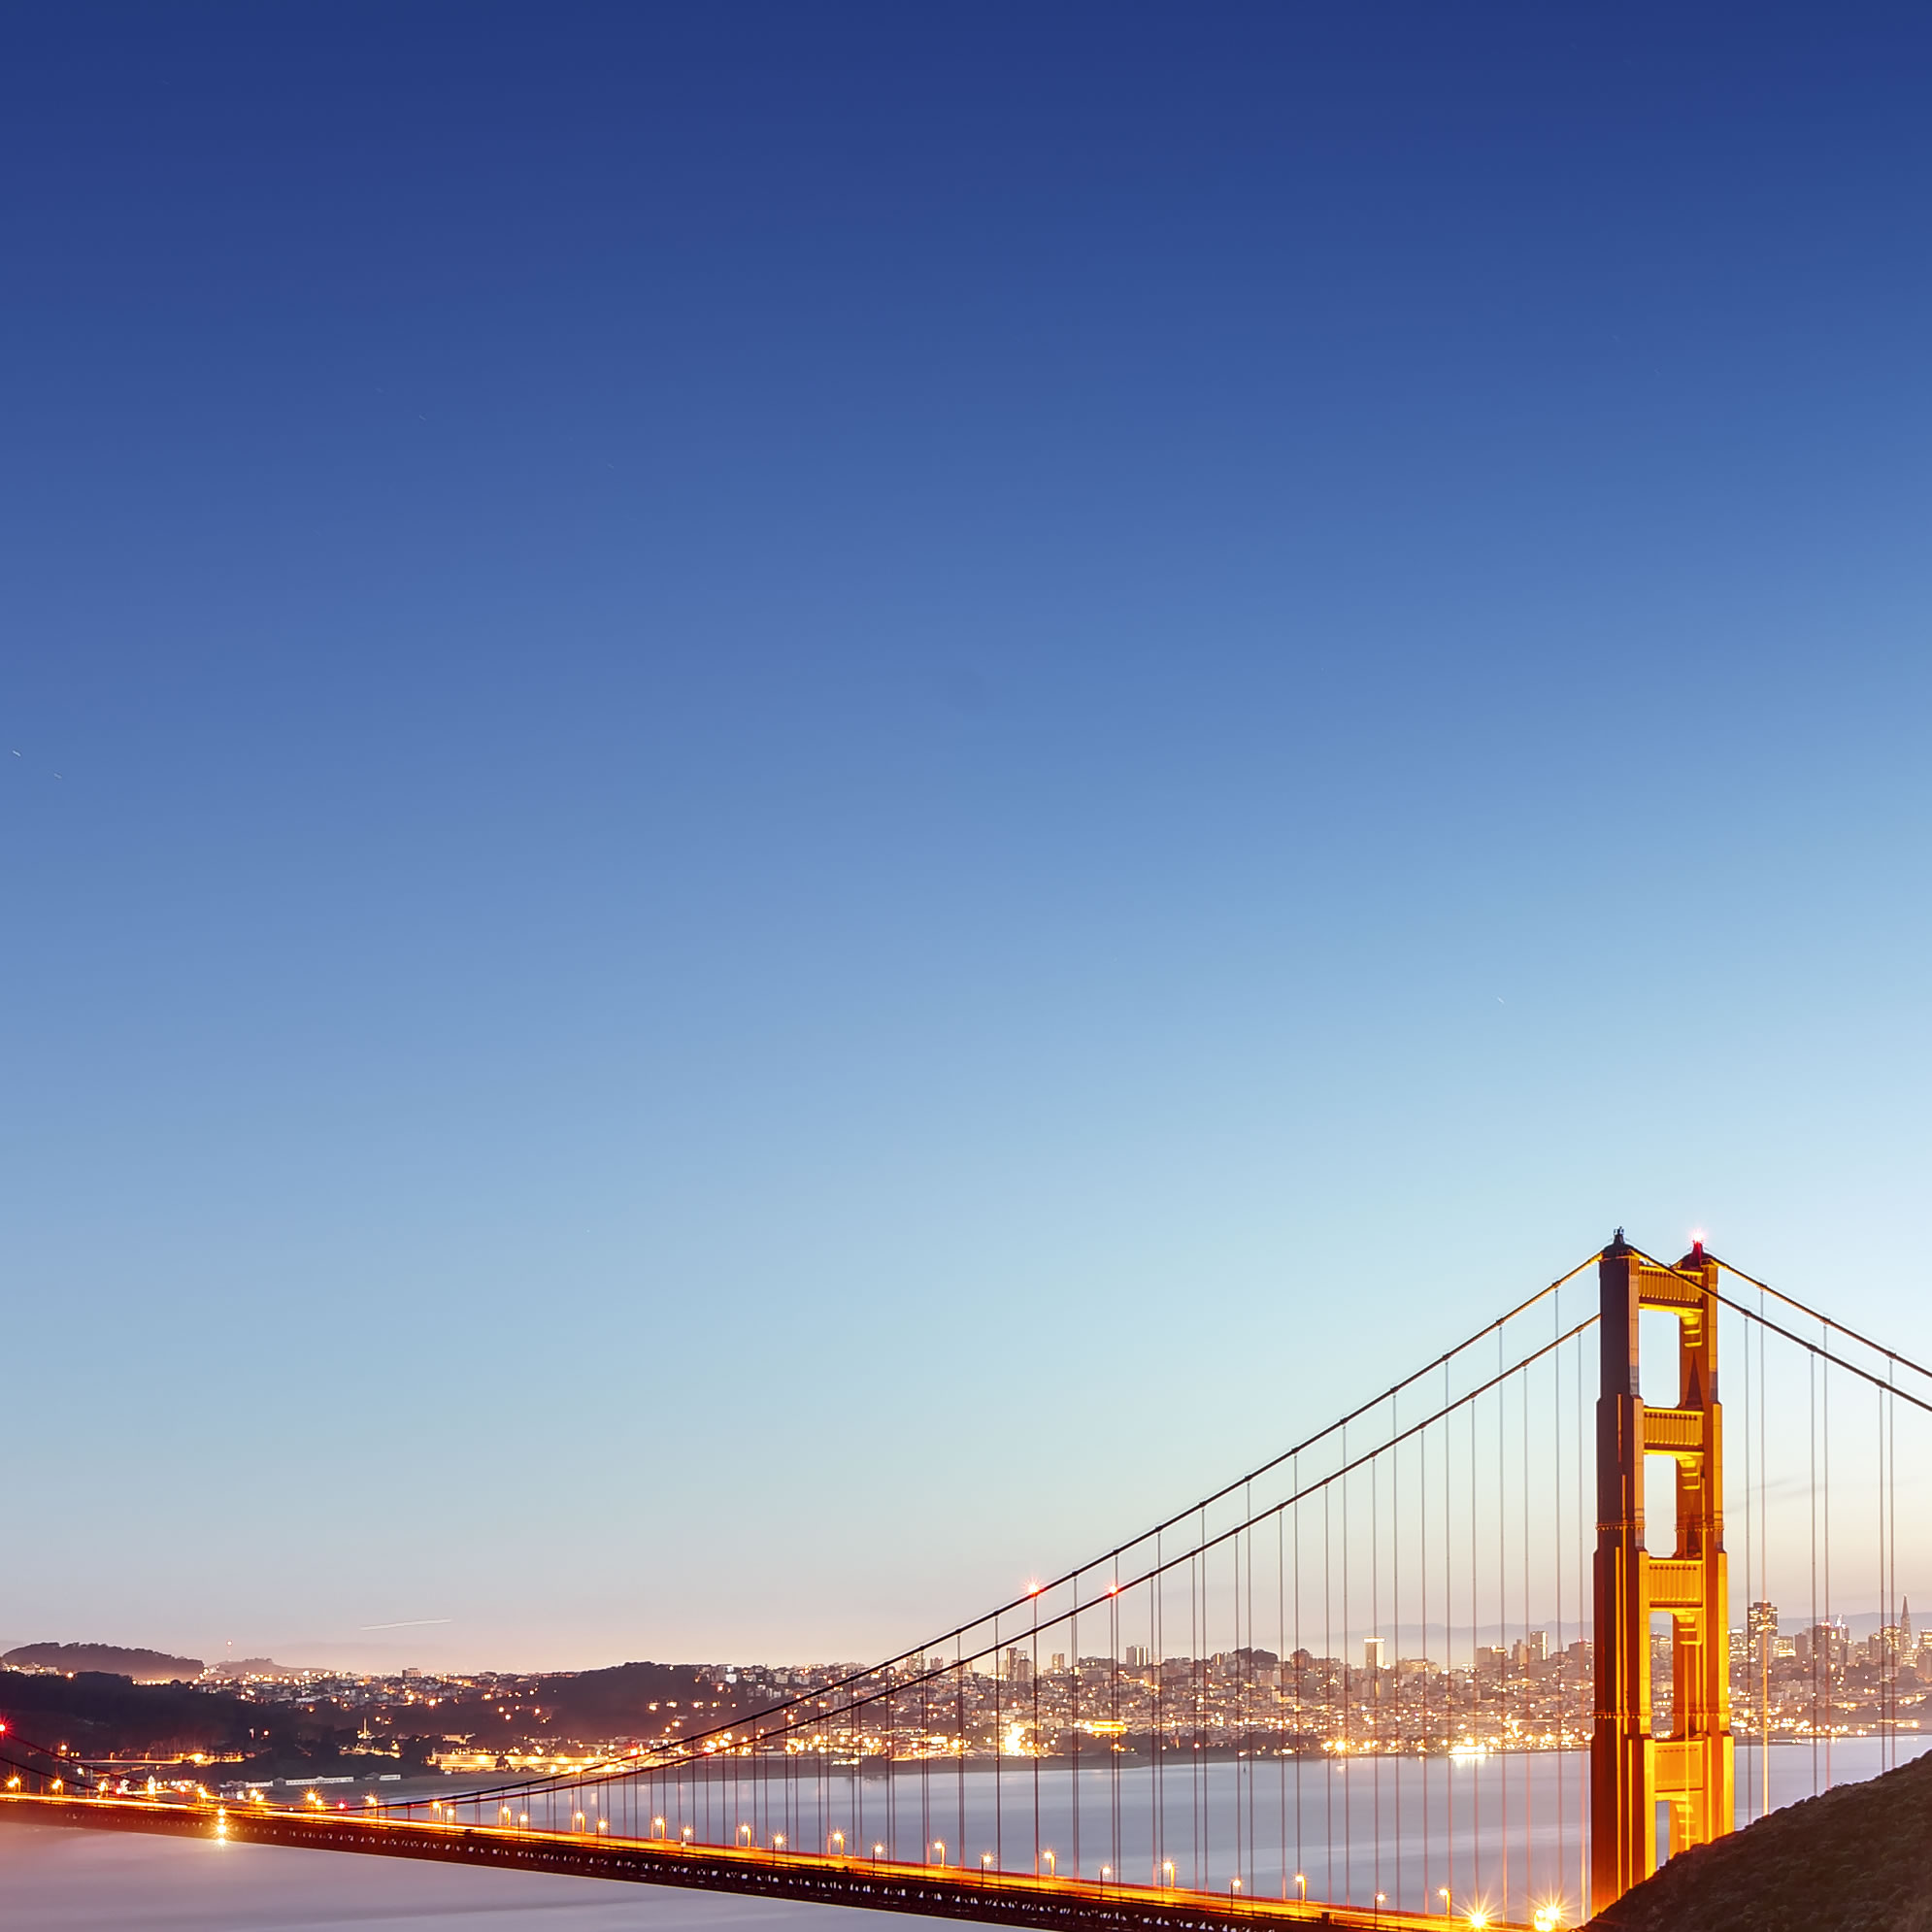 View of Golden Gate Bridge in the evening with San Francisco in the background. City lights visible in the evening light.